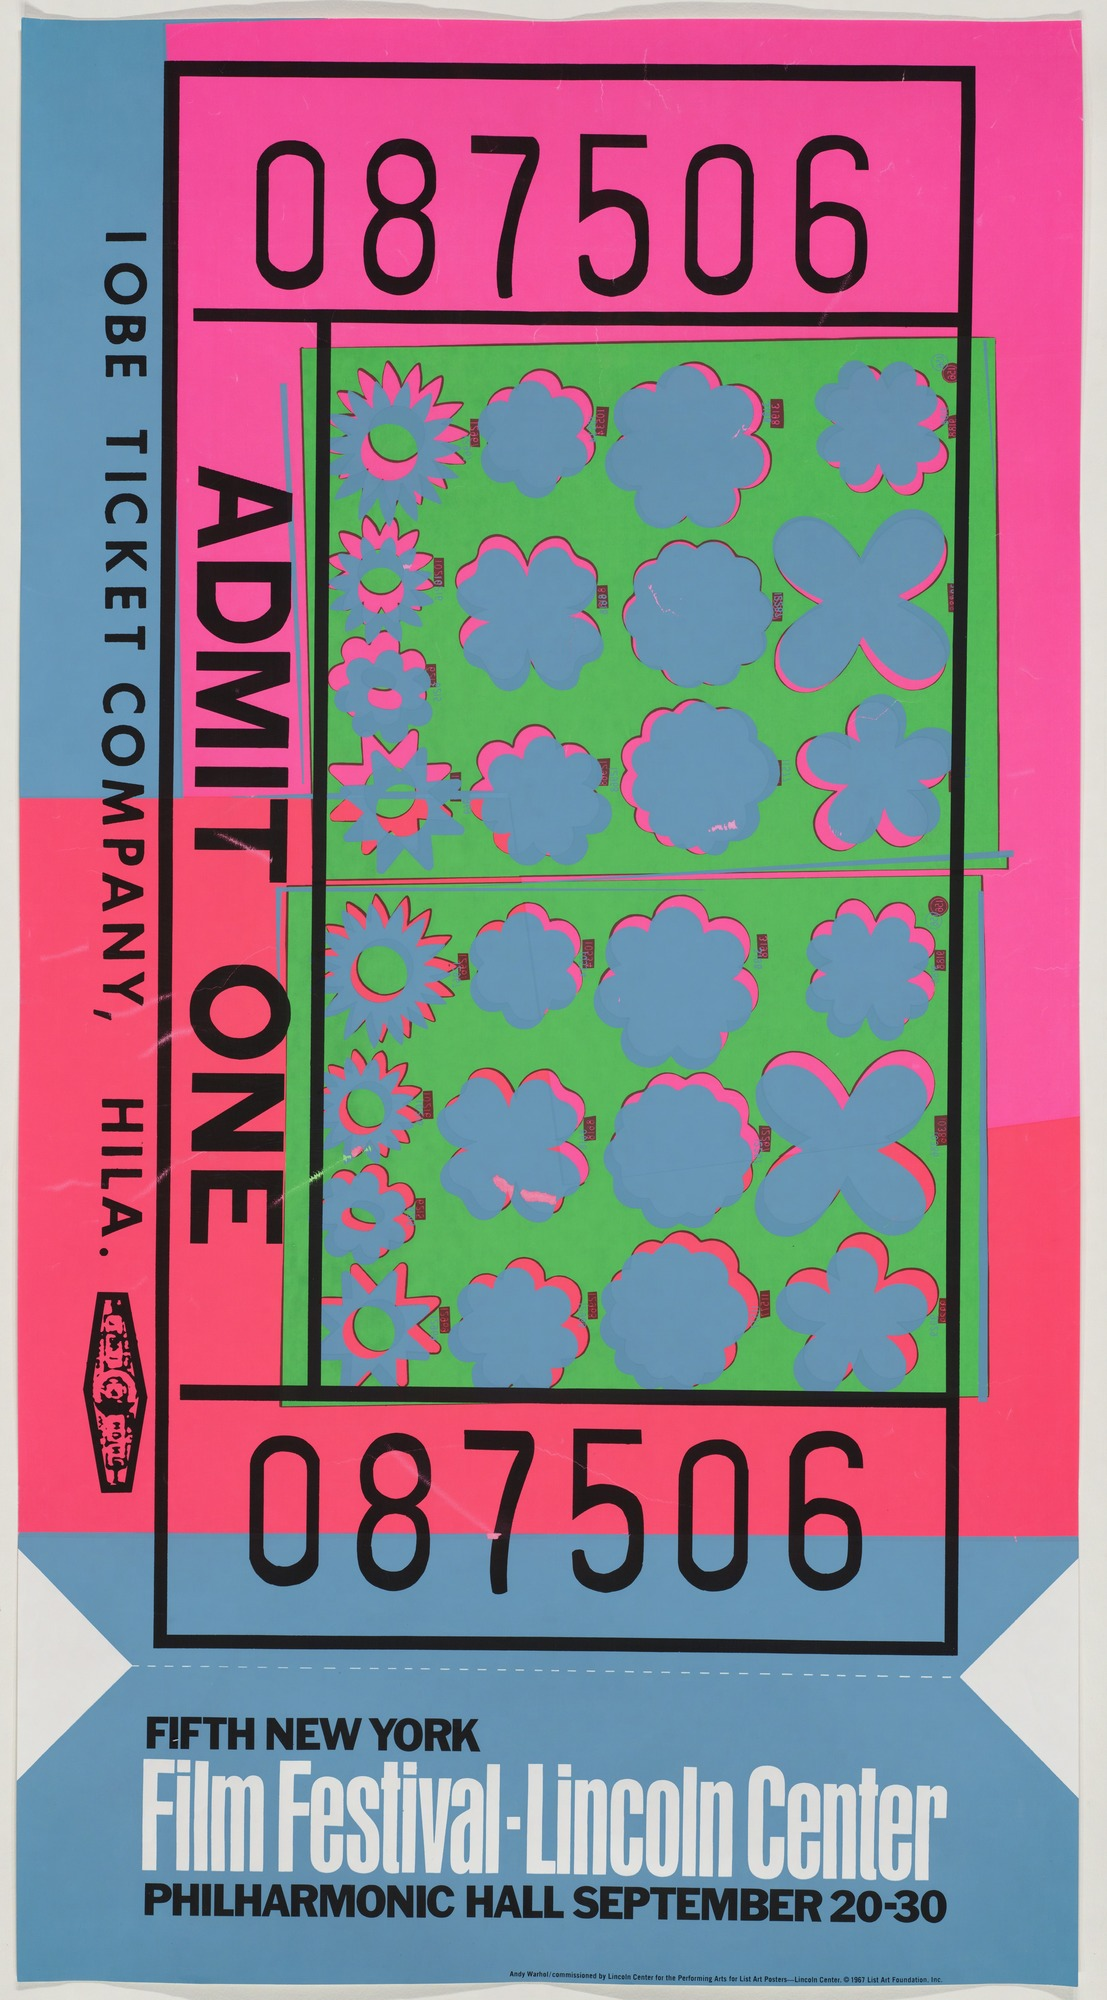 illustrational poster of a pink and blue admissions ticket for a film festival at Lincoln Center